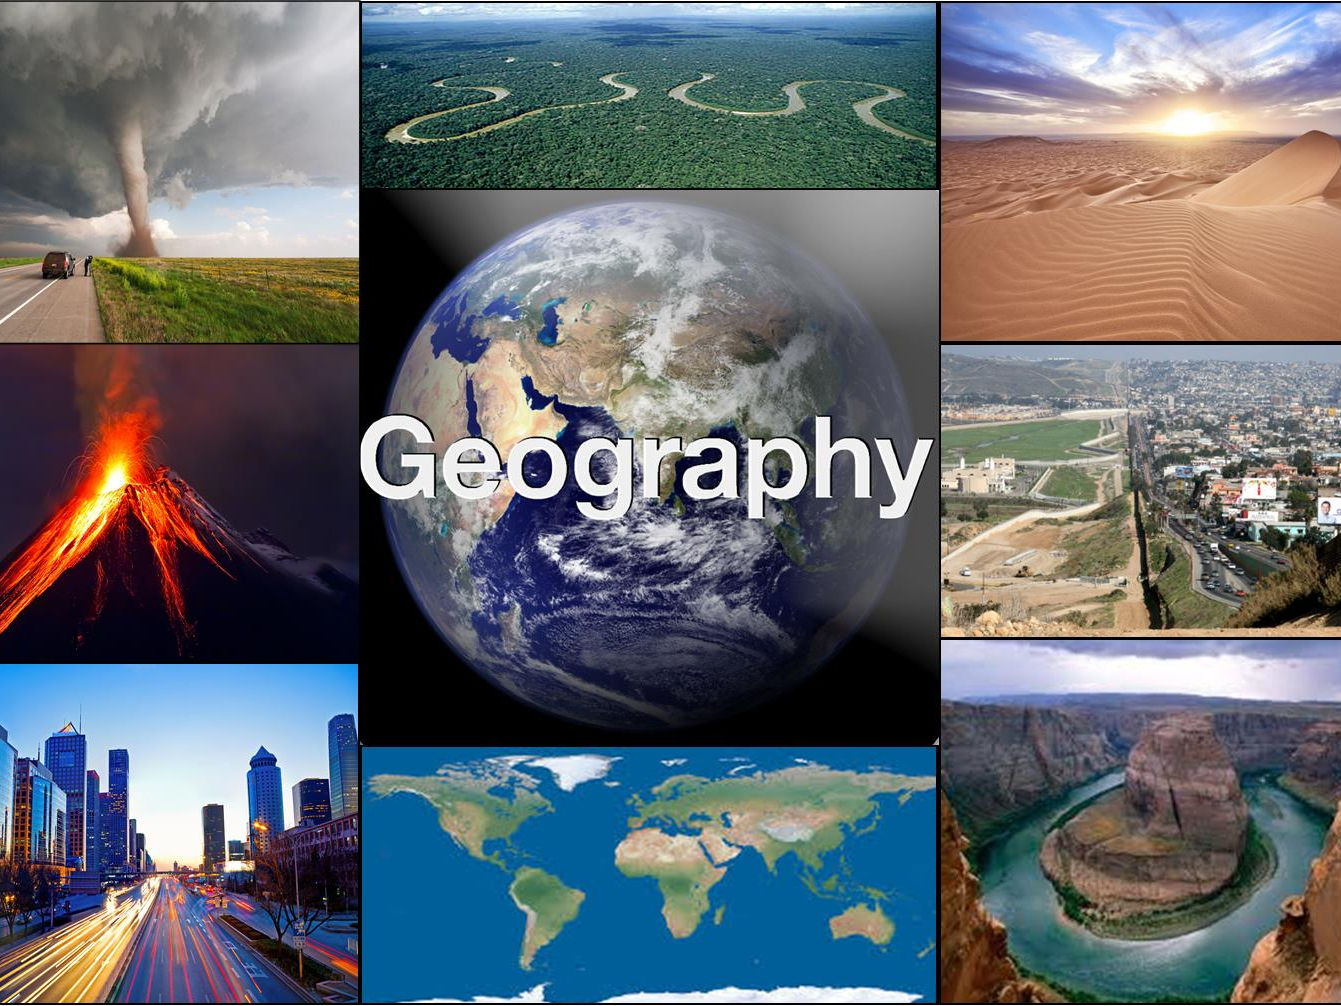 Key stage 3 Geography Assessment